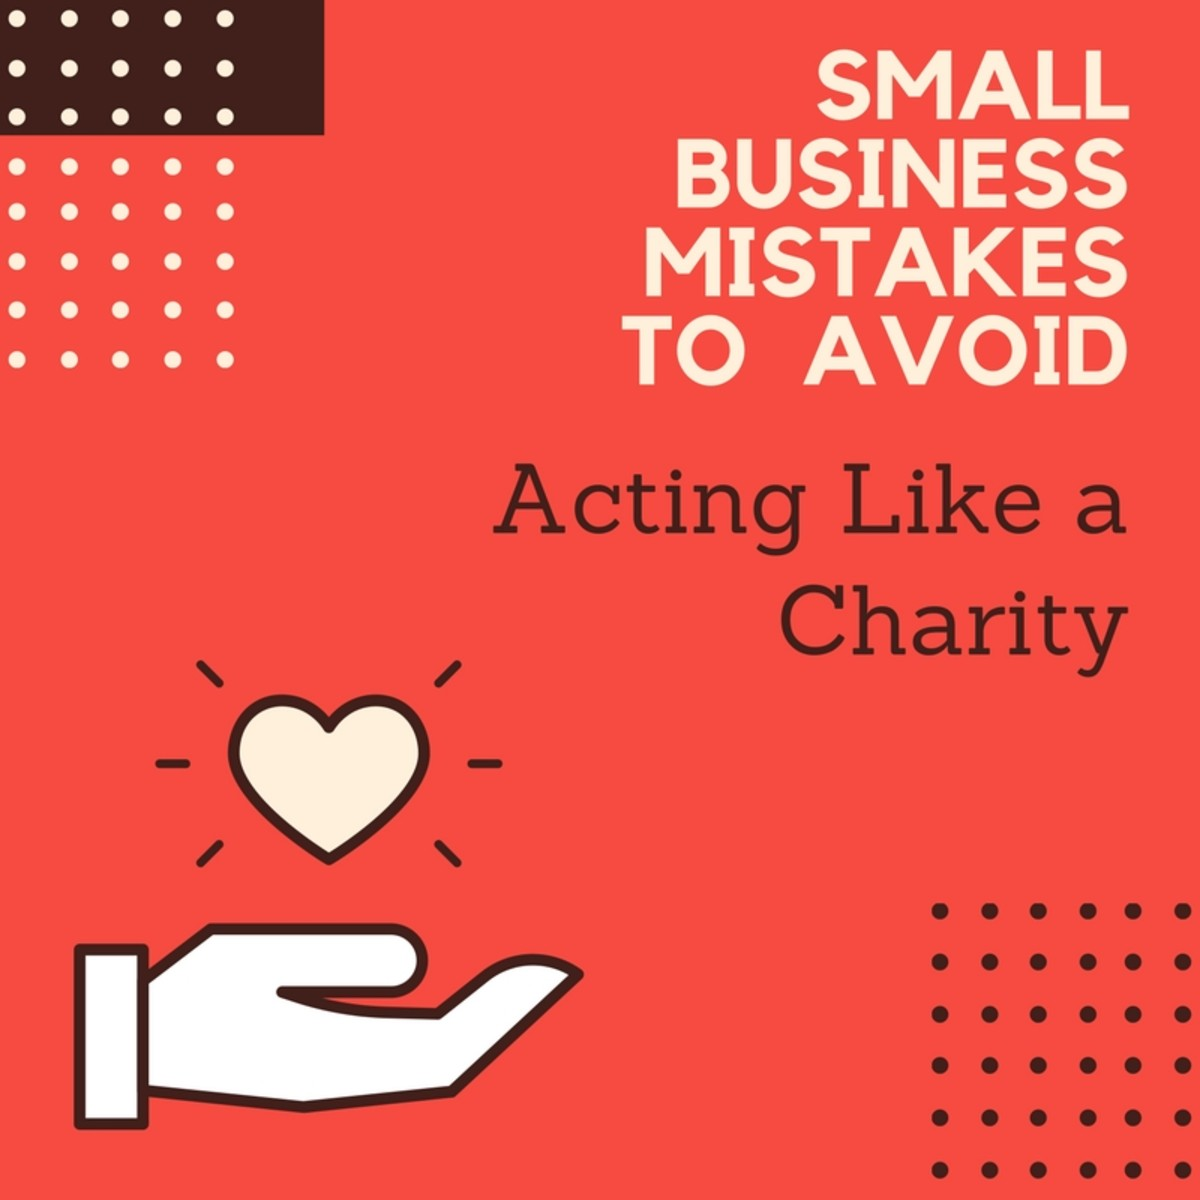 Small Business Mistakes to Avoid: Acting Like a Charity